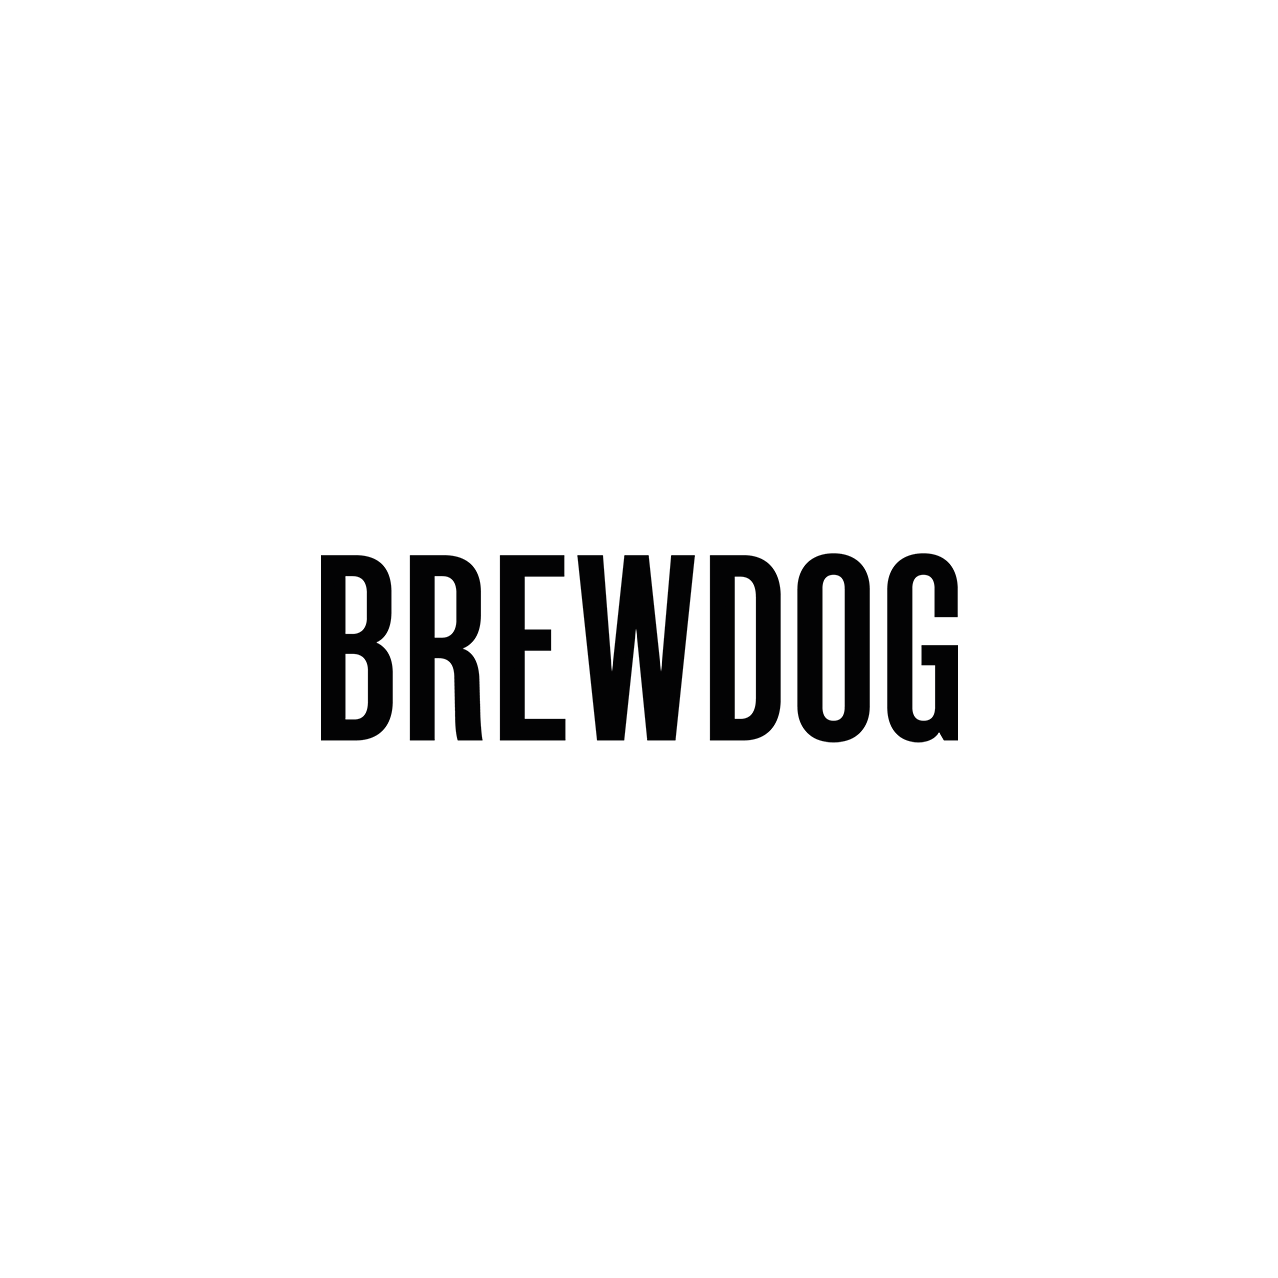 Brewdog Coupons & Promo Codes